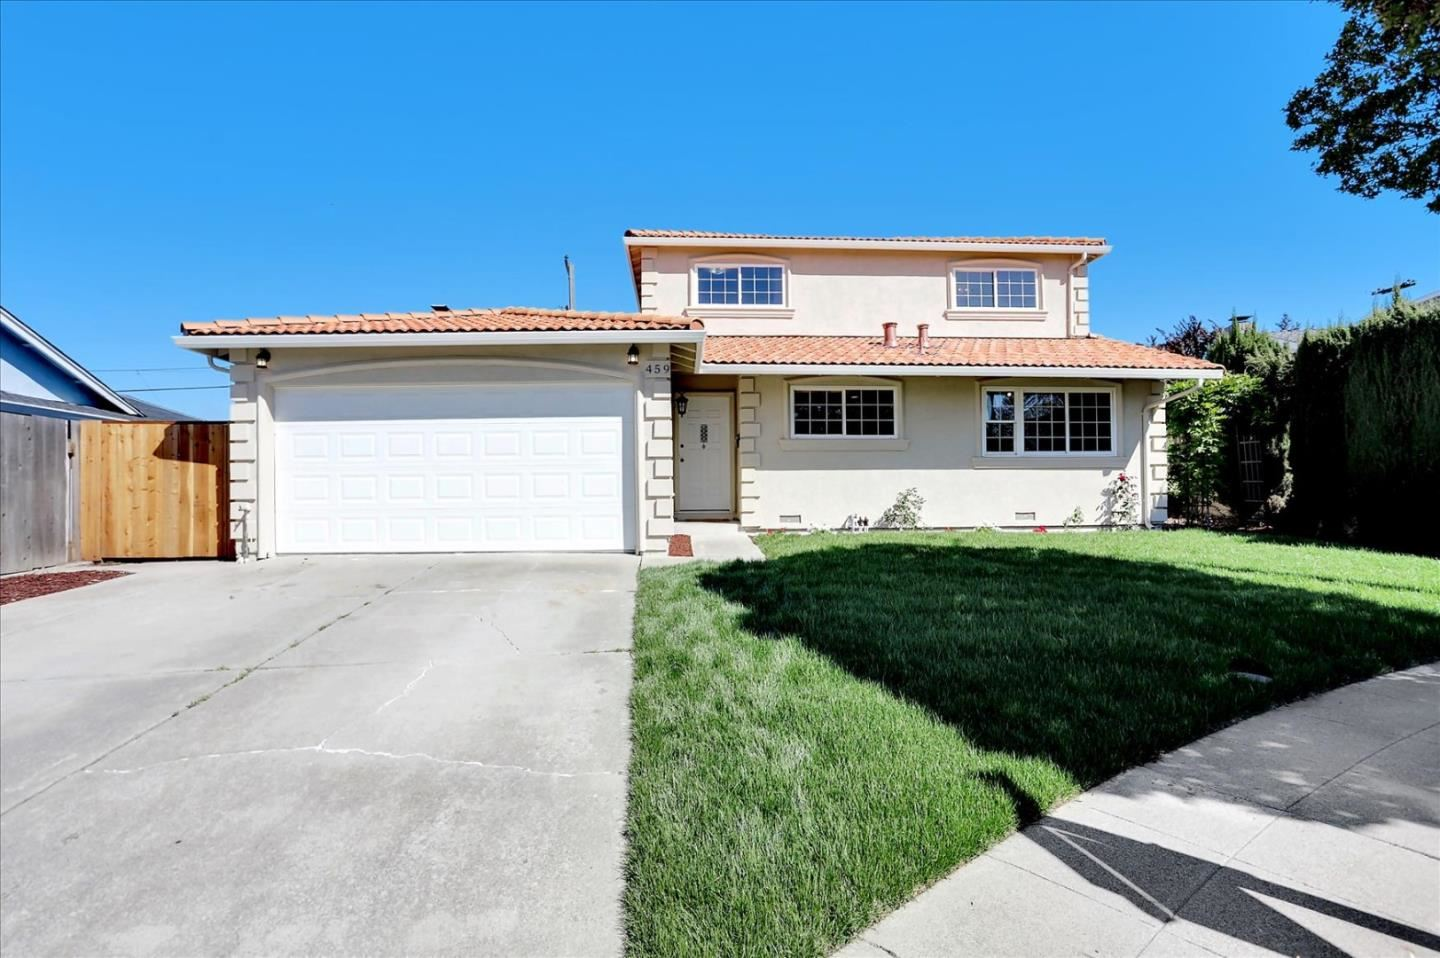 Photo for 459 Woodcock Court, MILPITAS, CA 95035 (MLS # ML81840536)